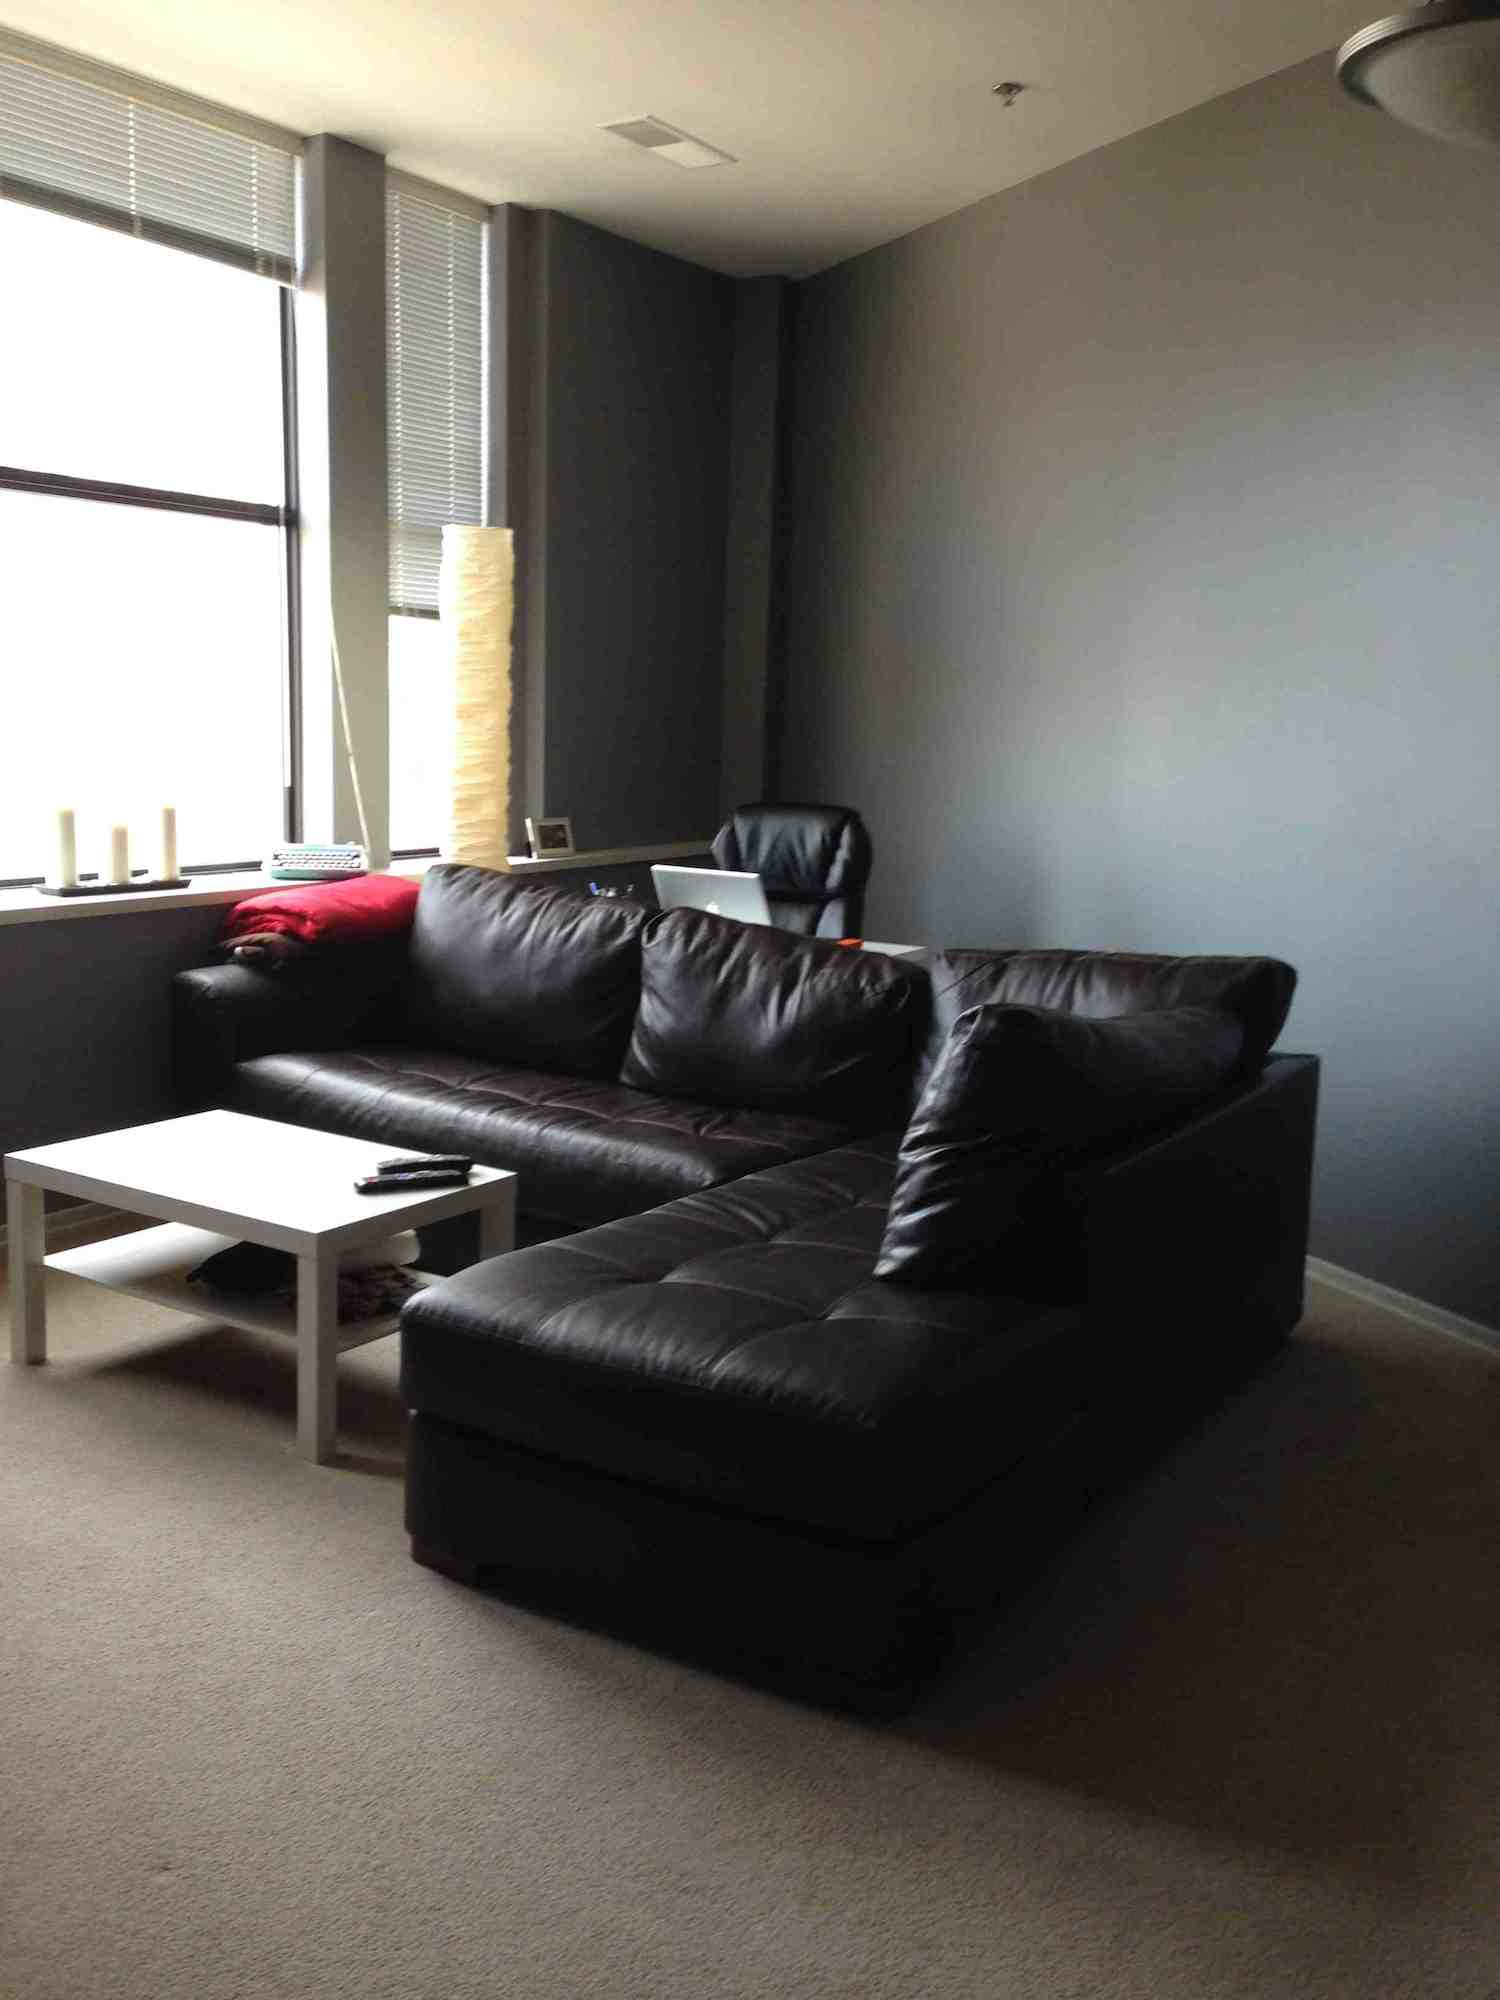 odd shaped living room furniture placement pics of rooms weird help with layout mirror floor photo jpg